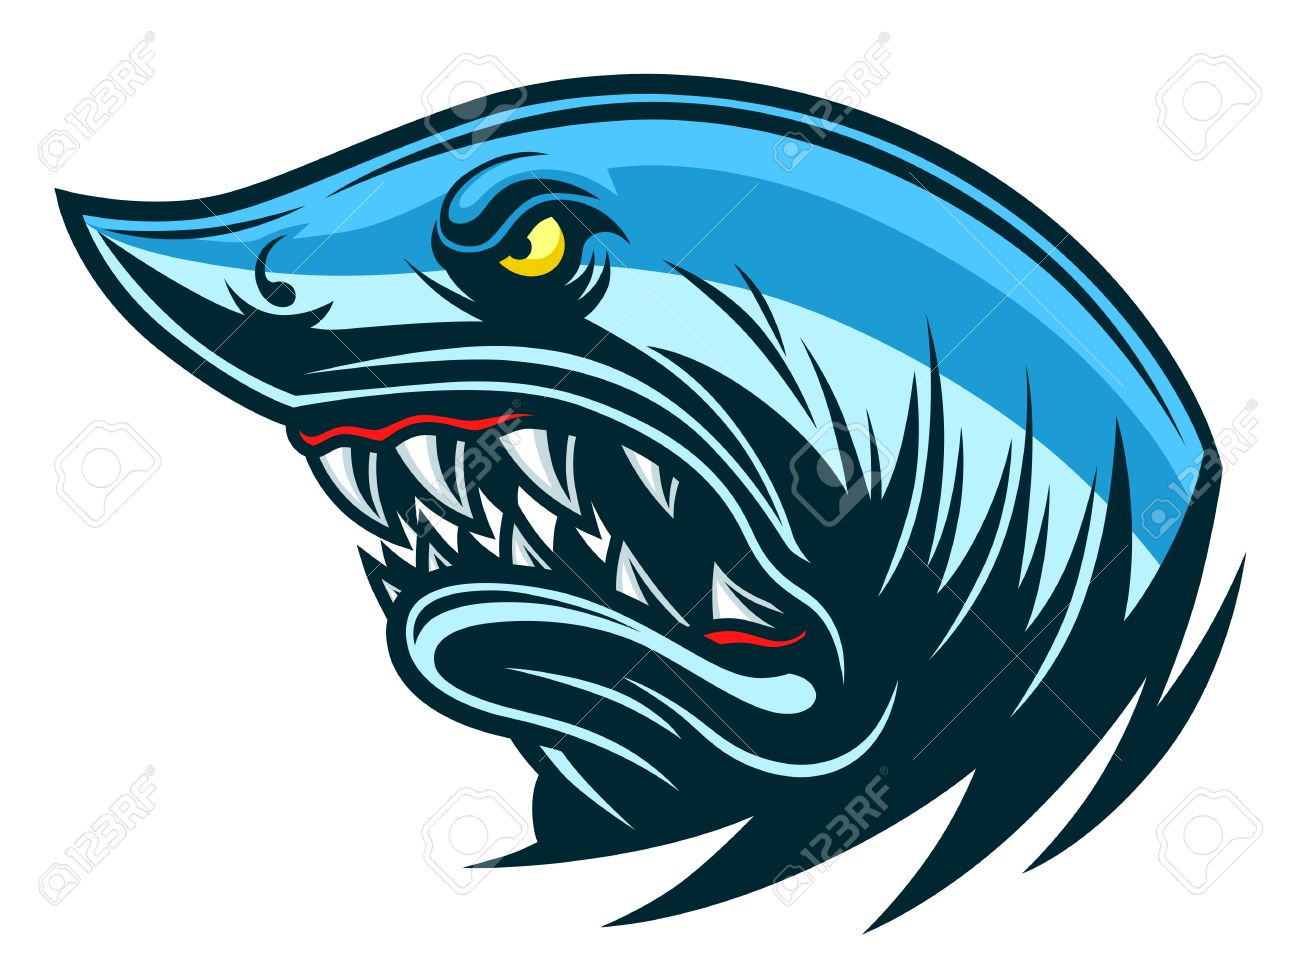 angry shark head royalty free cliparts vectors and stock rh 123rf com shark vector free shark victory press blue/grey